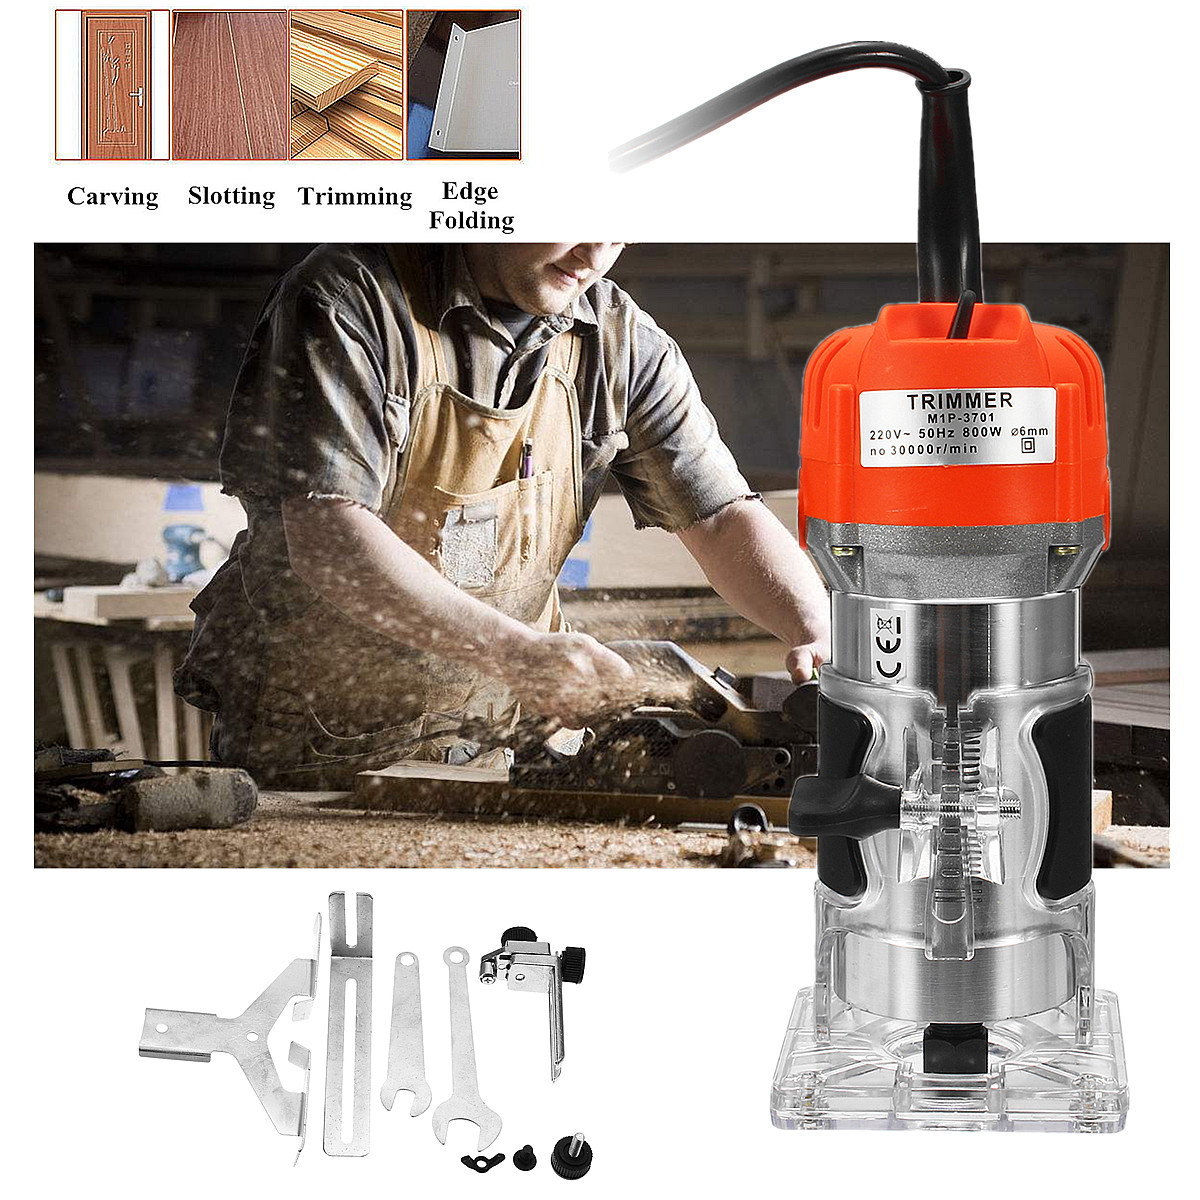 Raitool 800w 30000rmp Electric Hand Trimmer 1 4 Inch Corded Wood Laminate Palm Router